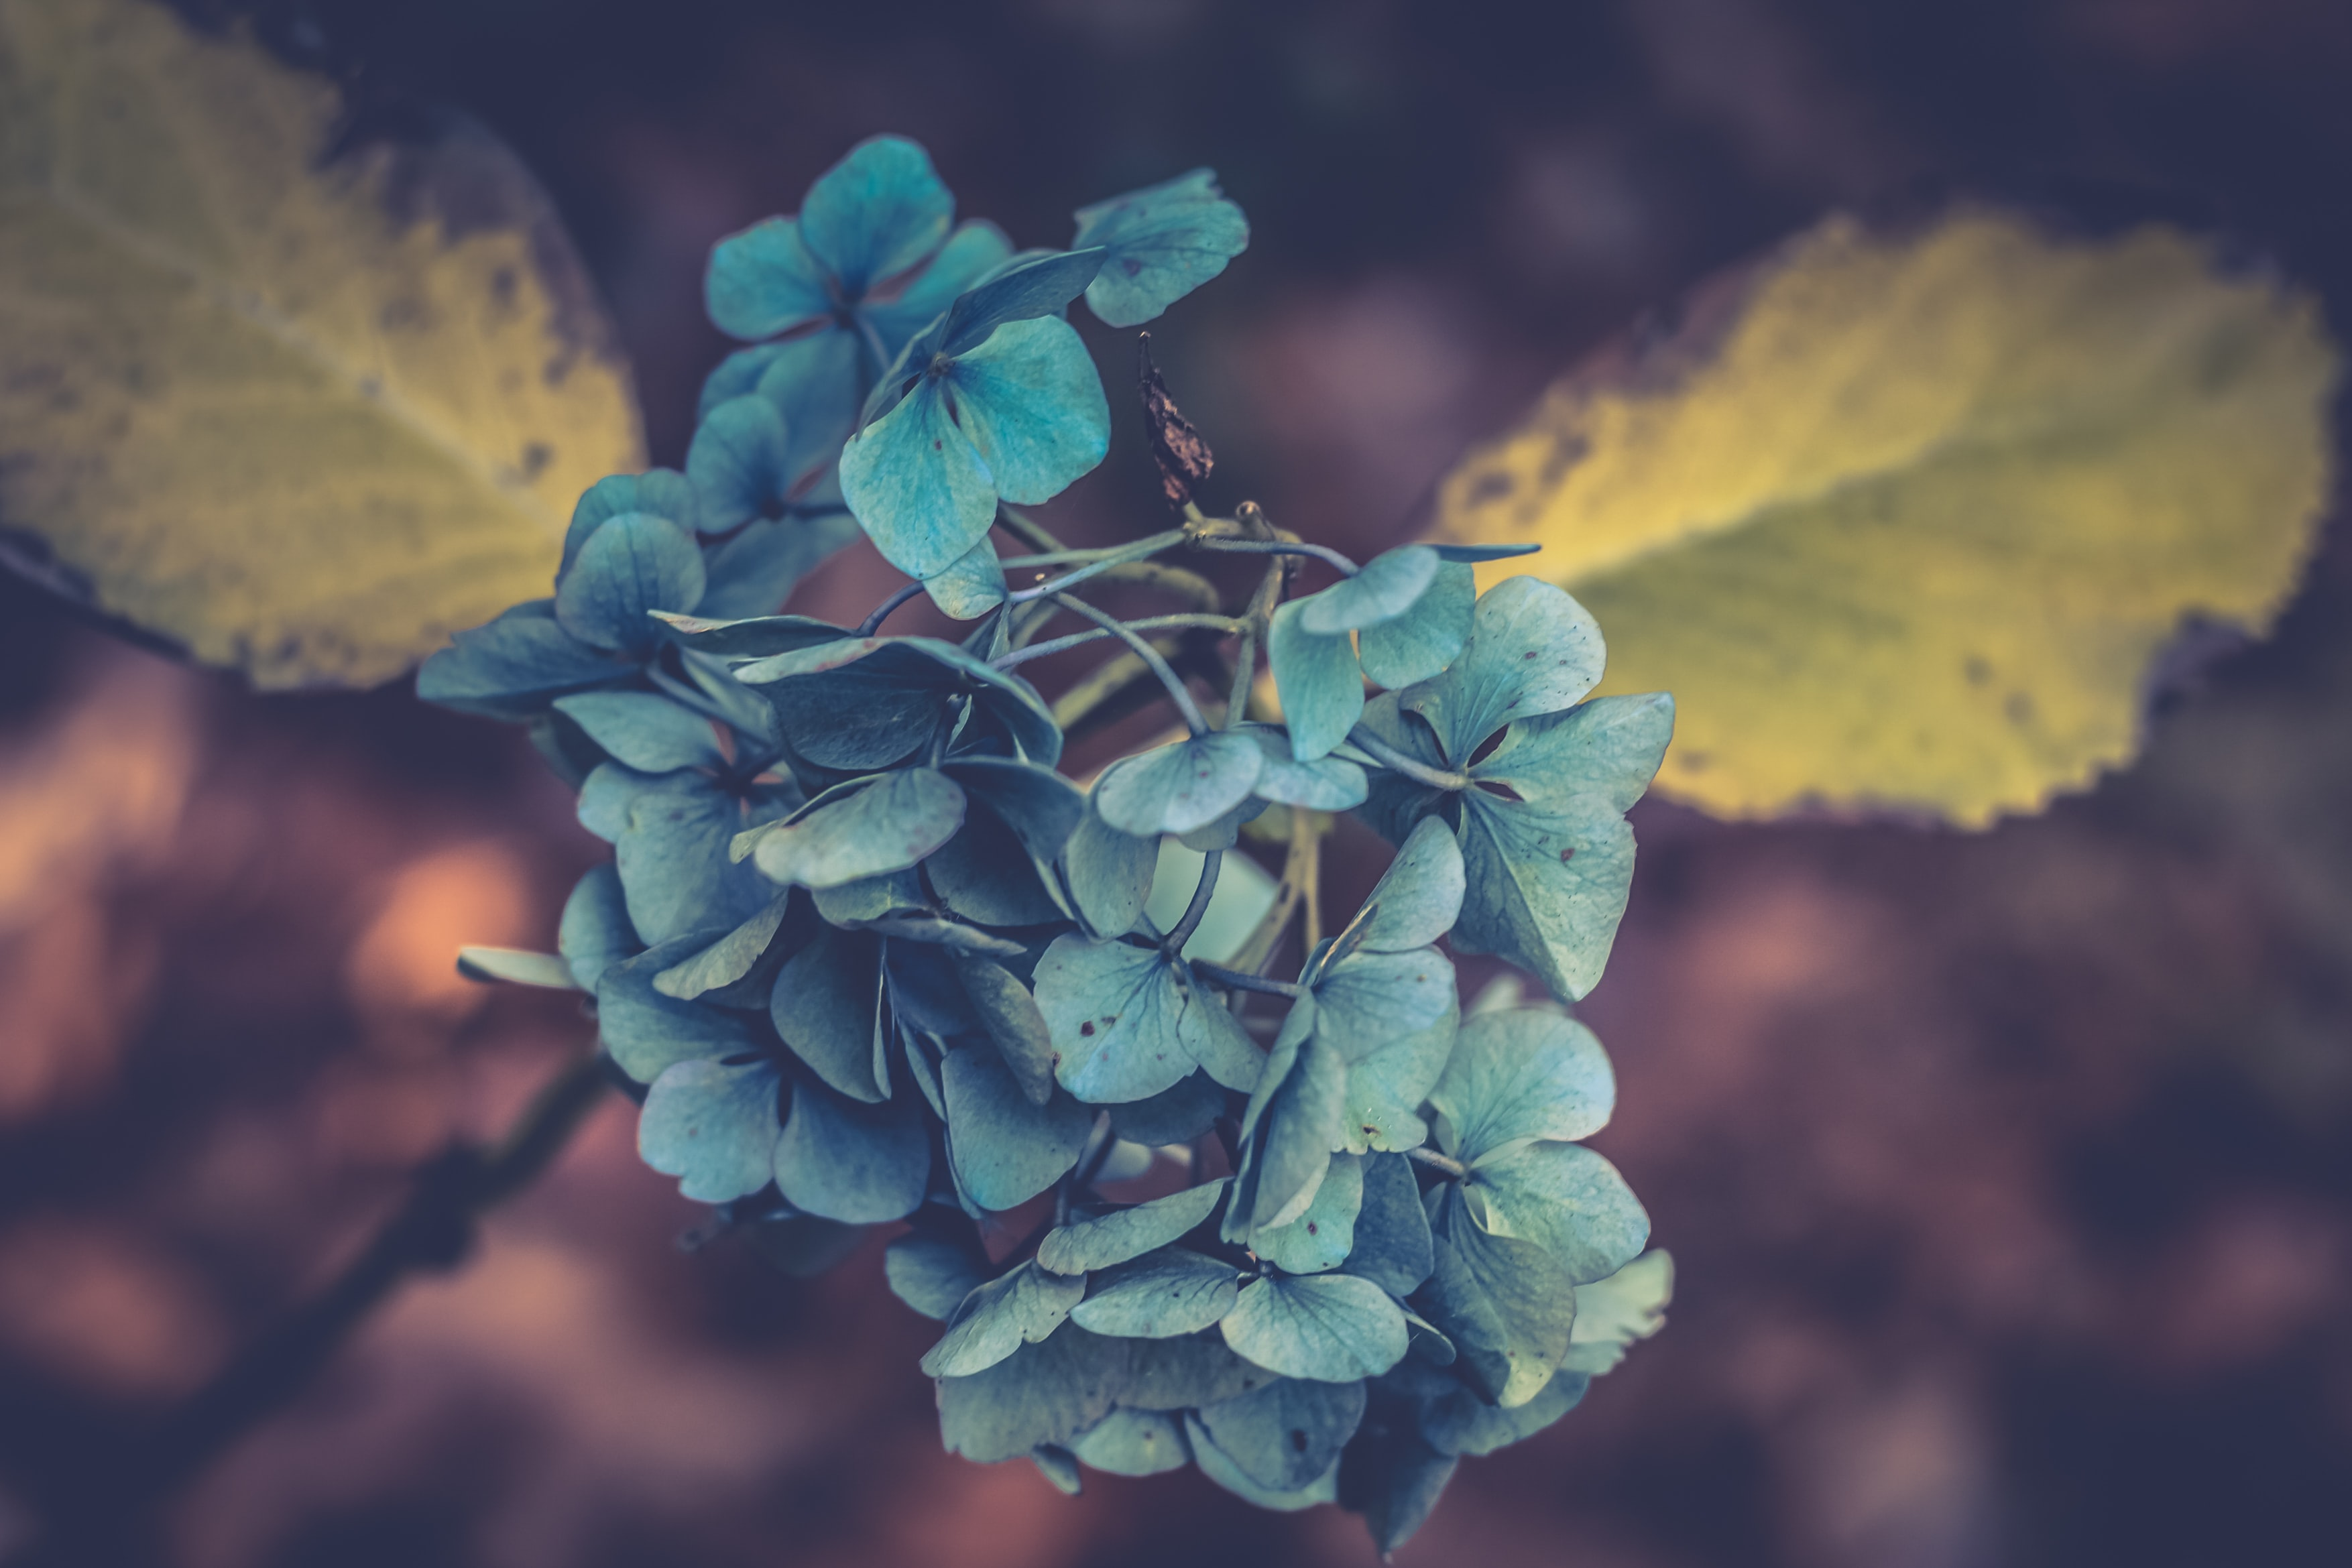 Close-up of a cluster of hydrangea flowers with wilting leaves